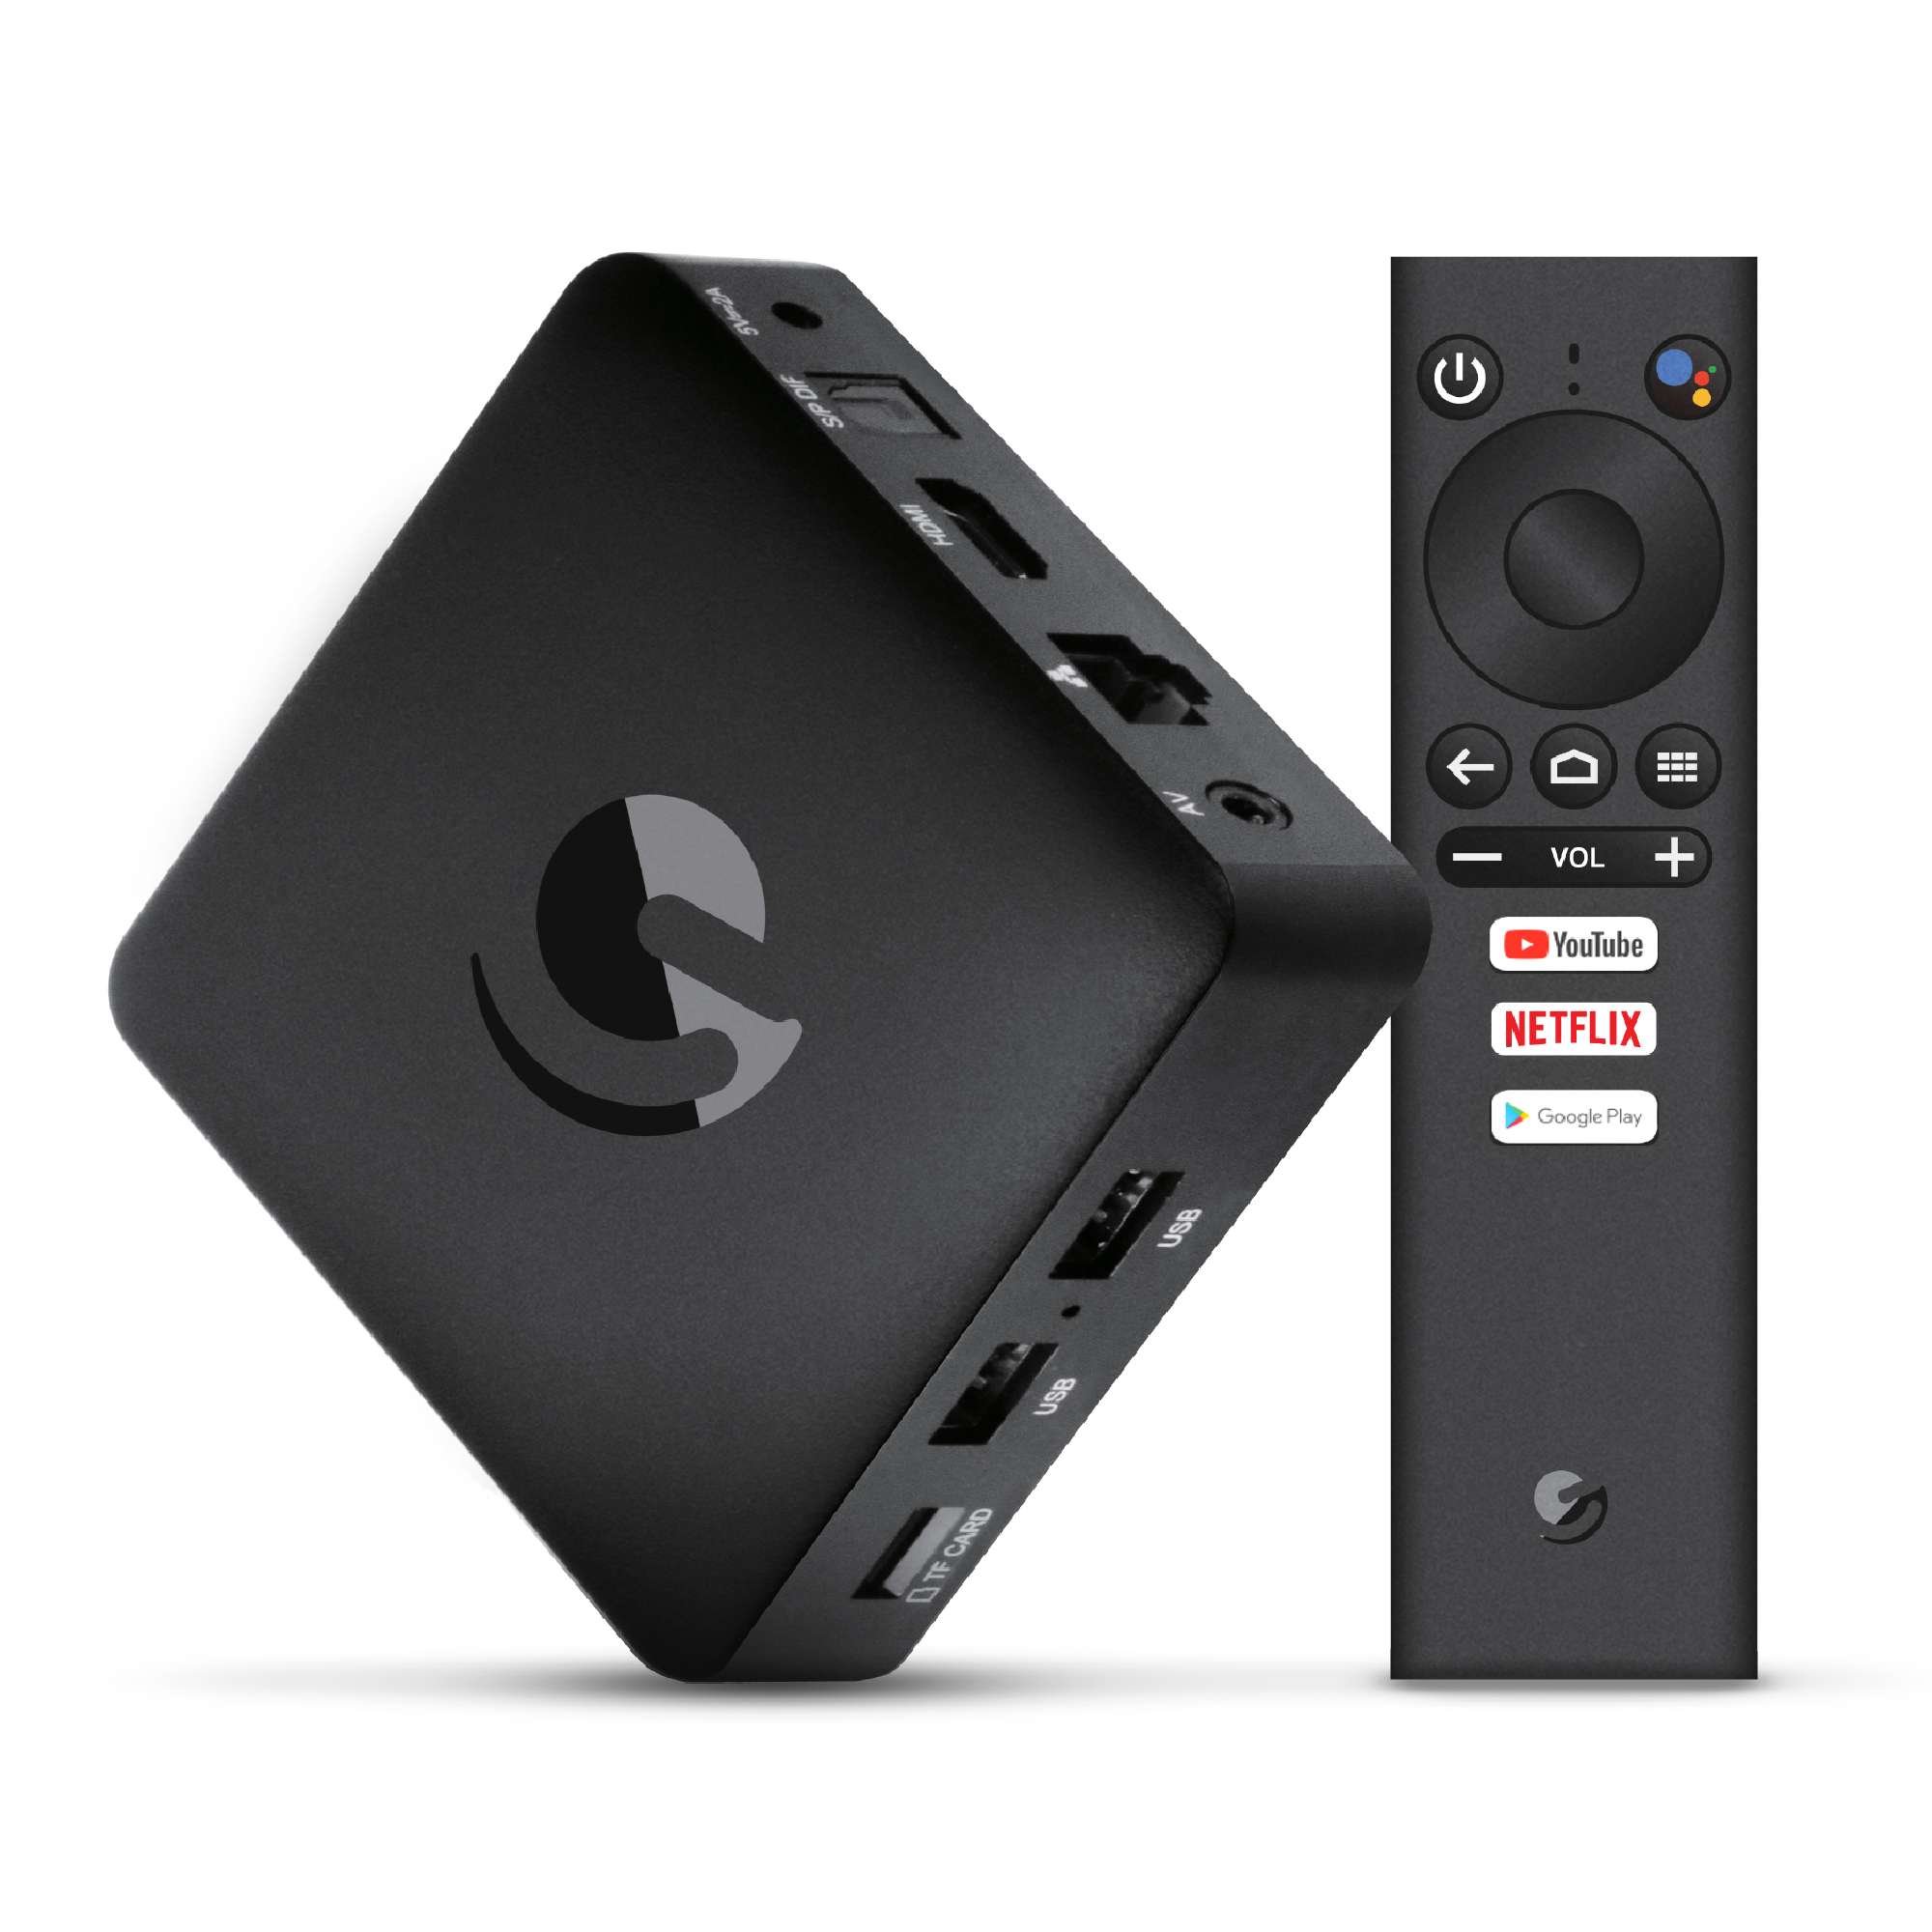 Walmart Starts Selling a New Android TV Box Called Jetstream - Cord